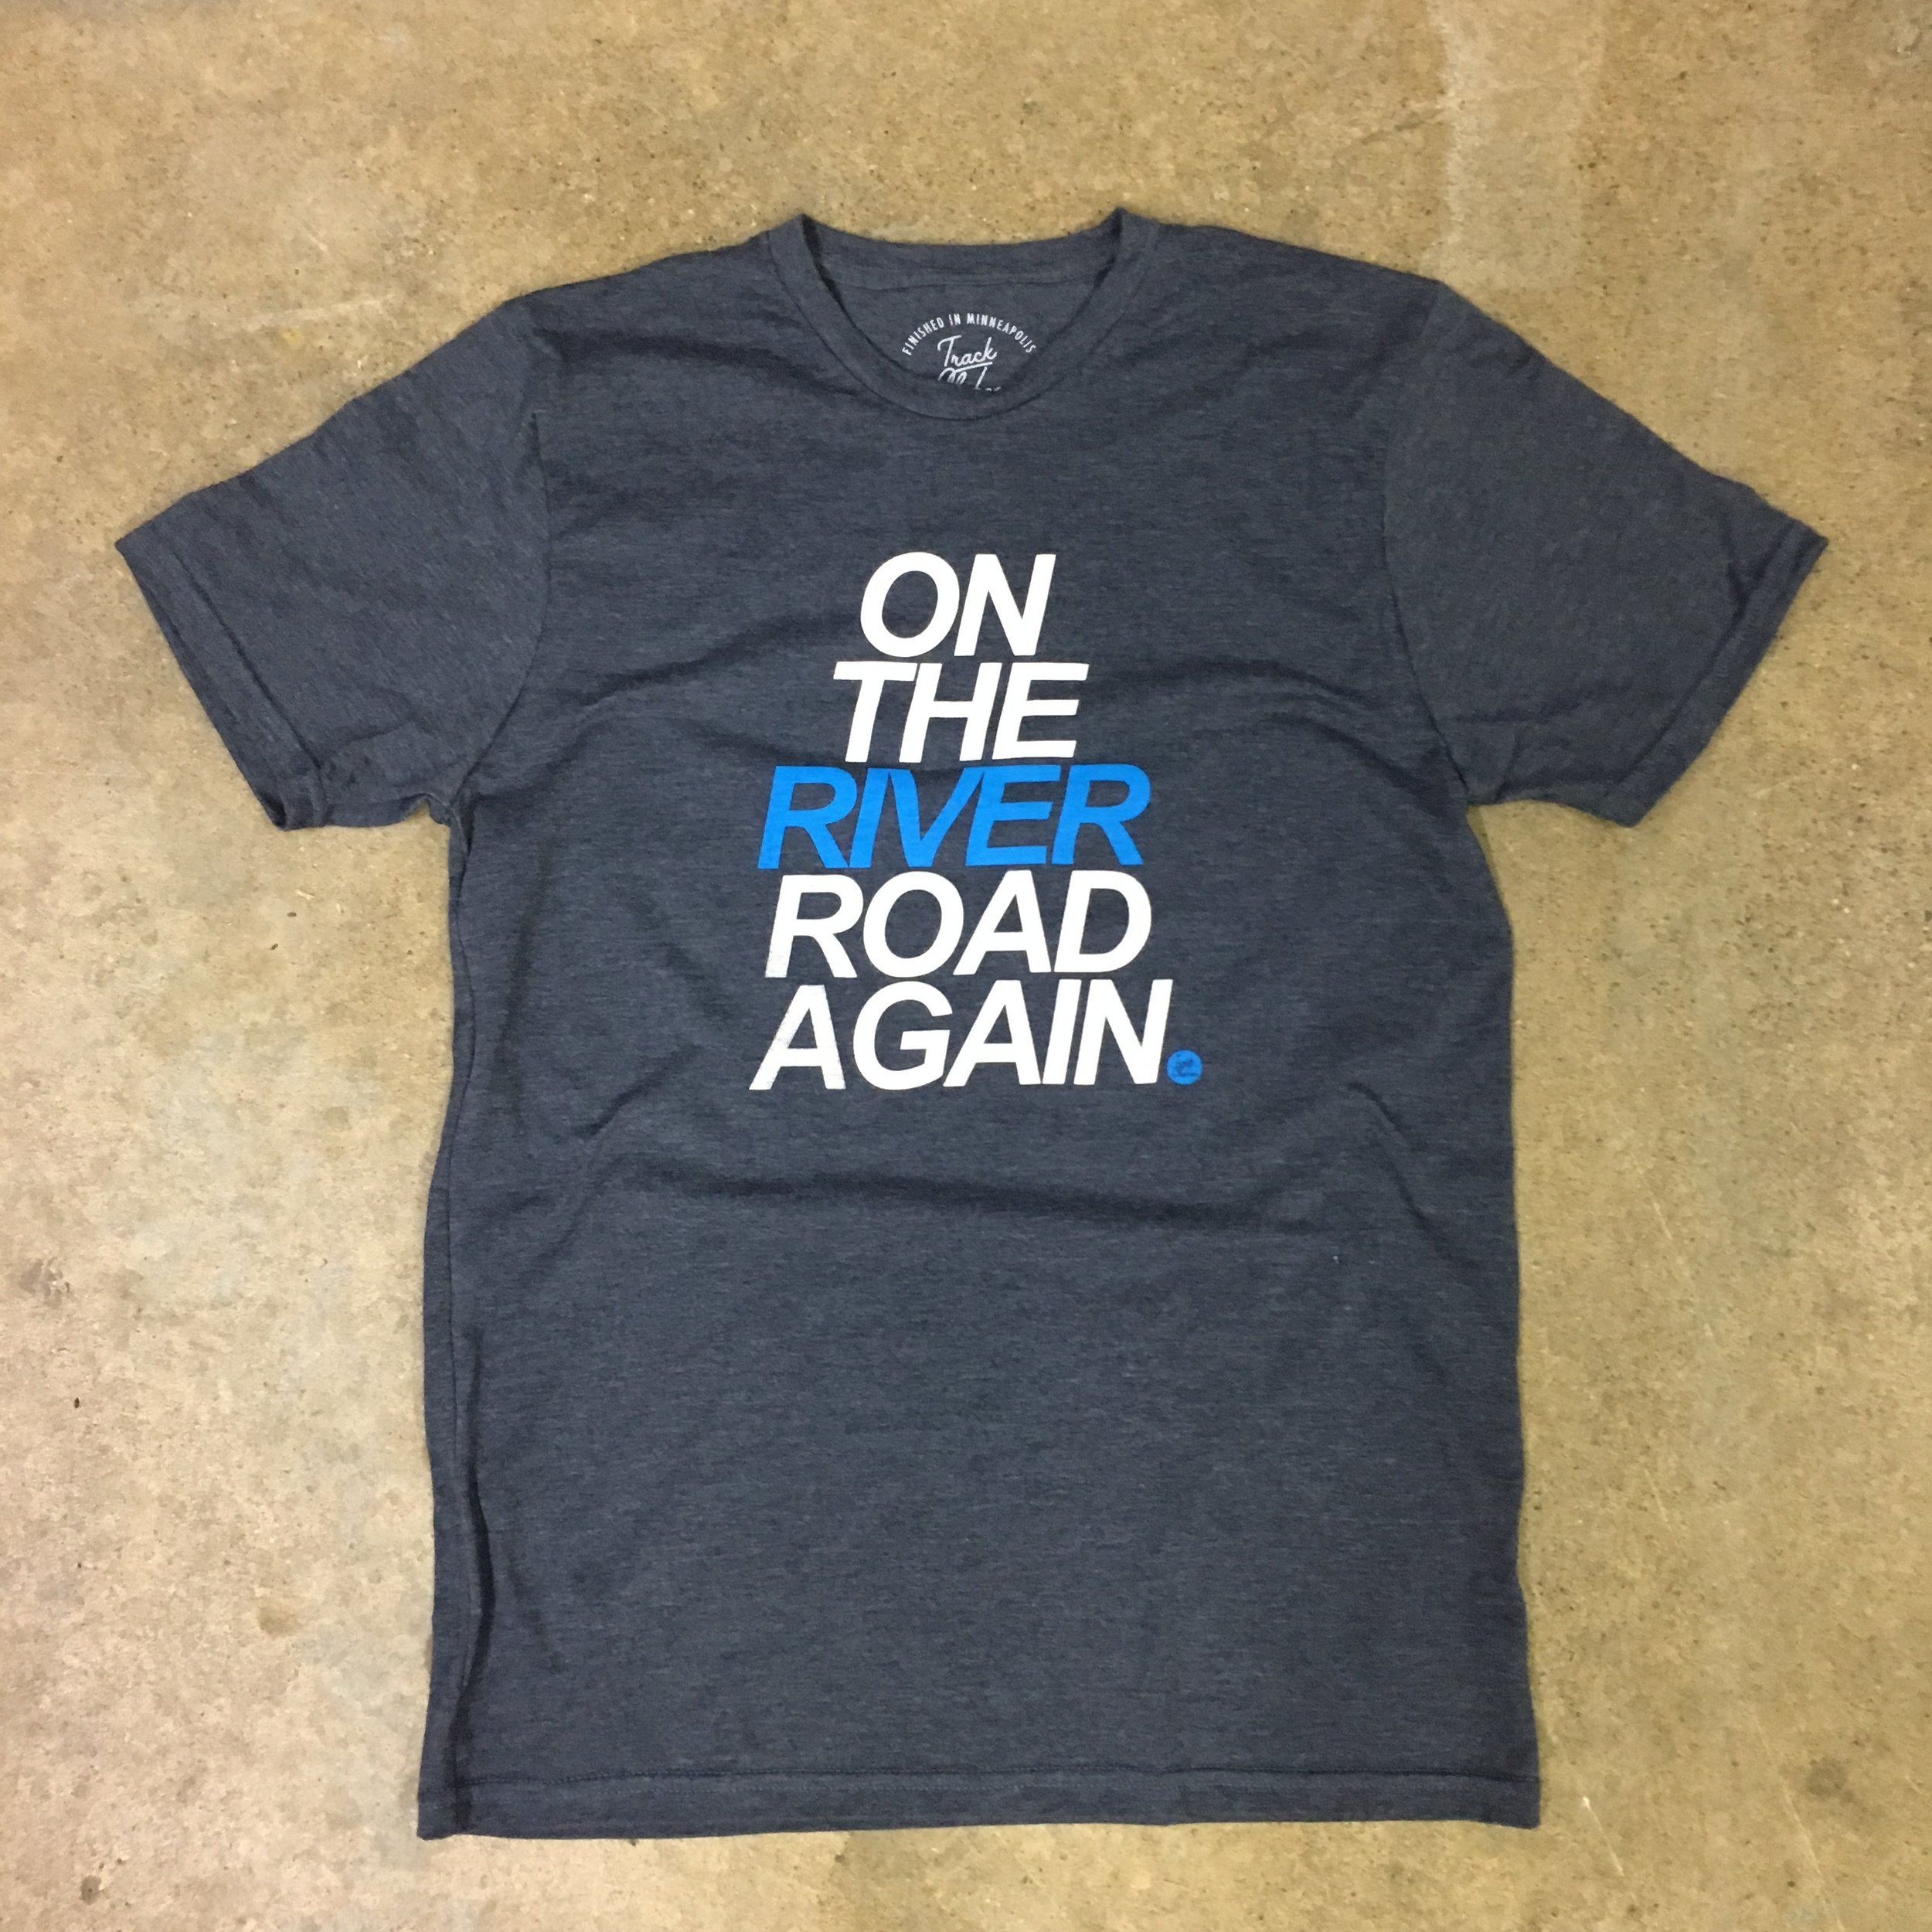 MORE THAN A TEE: - The On the River Road Again tee is more than just another shirt. It's a super soft water-based print on a t-shirt that was produced as sustainably as possible using organic cotton, modal and recycled polyester. We are also donating $5 from each shirt sale to the Friends of the Mississippi River. More information...